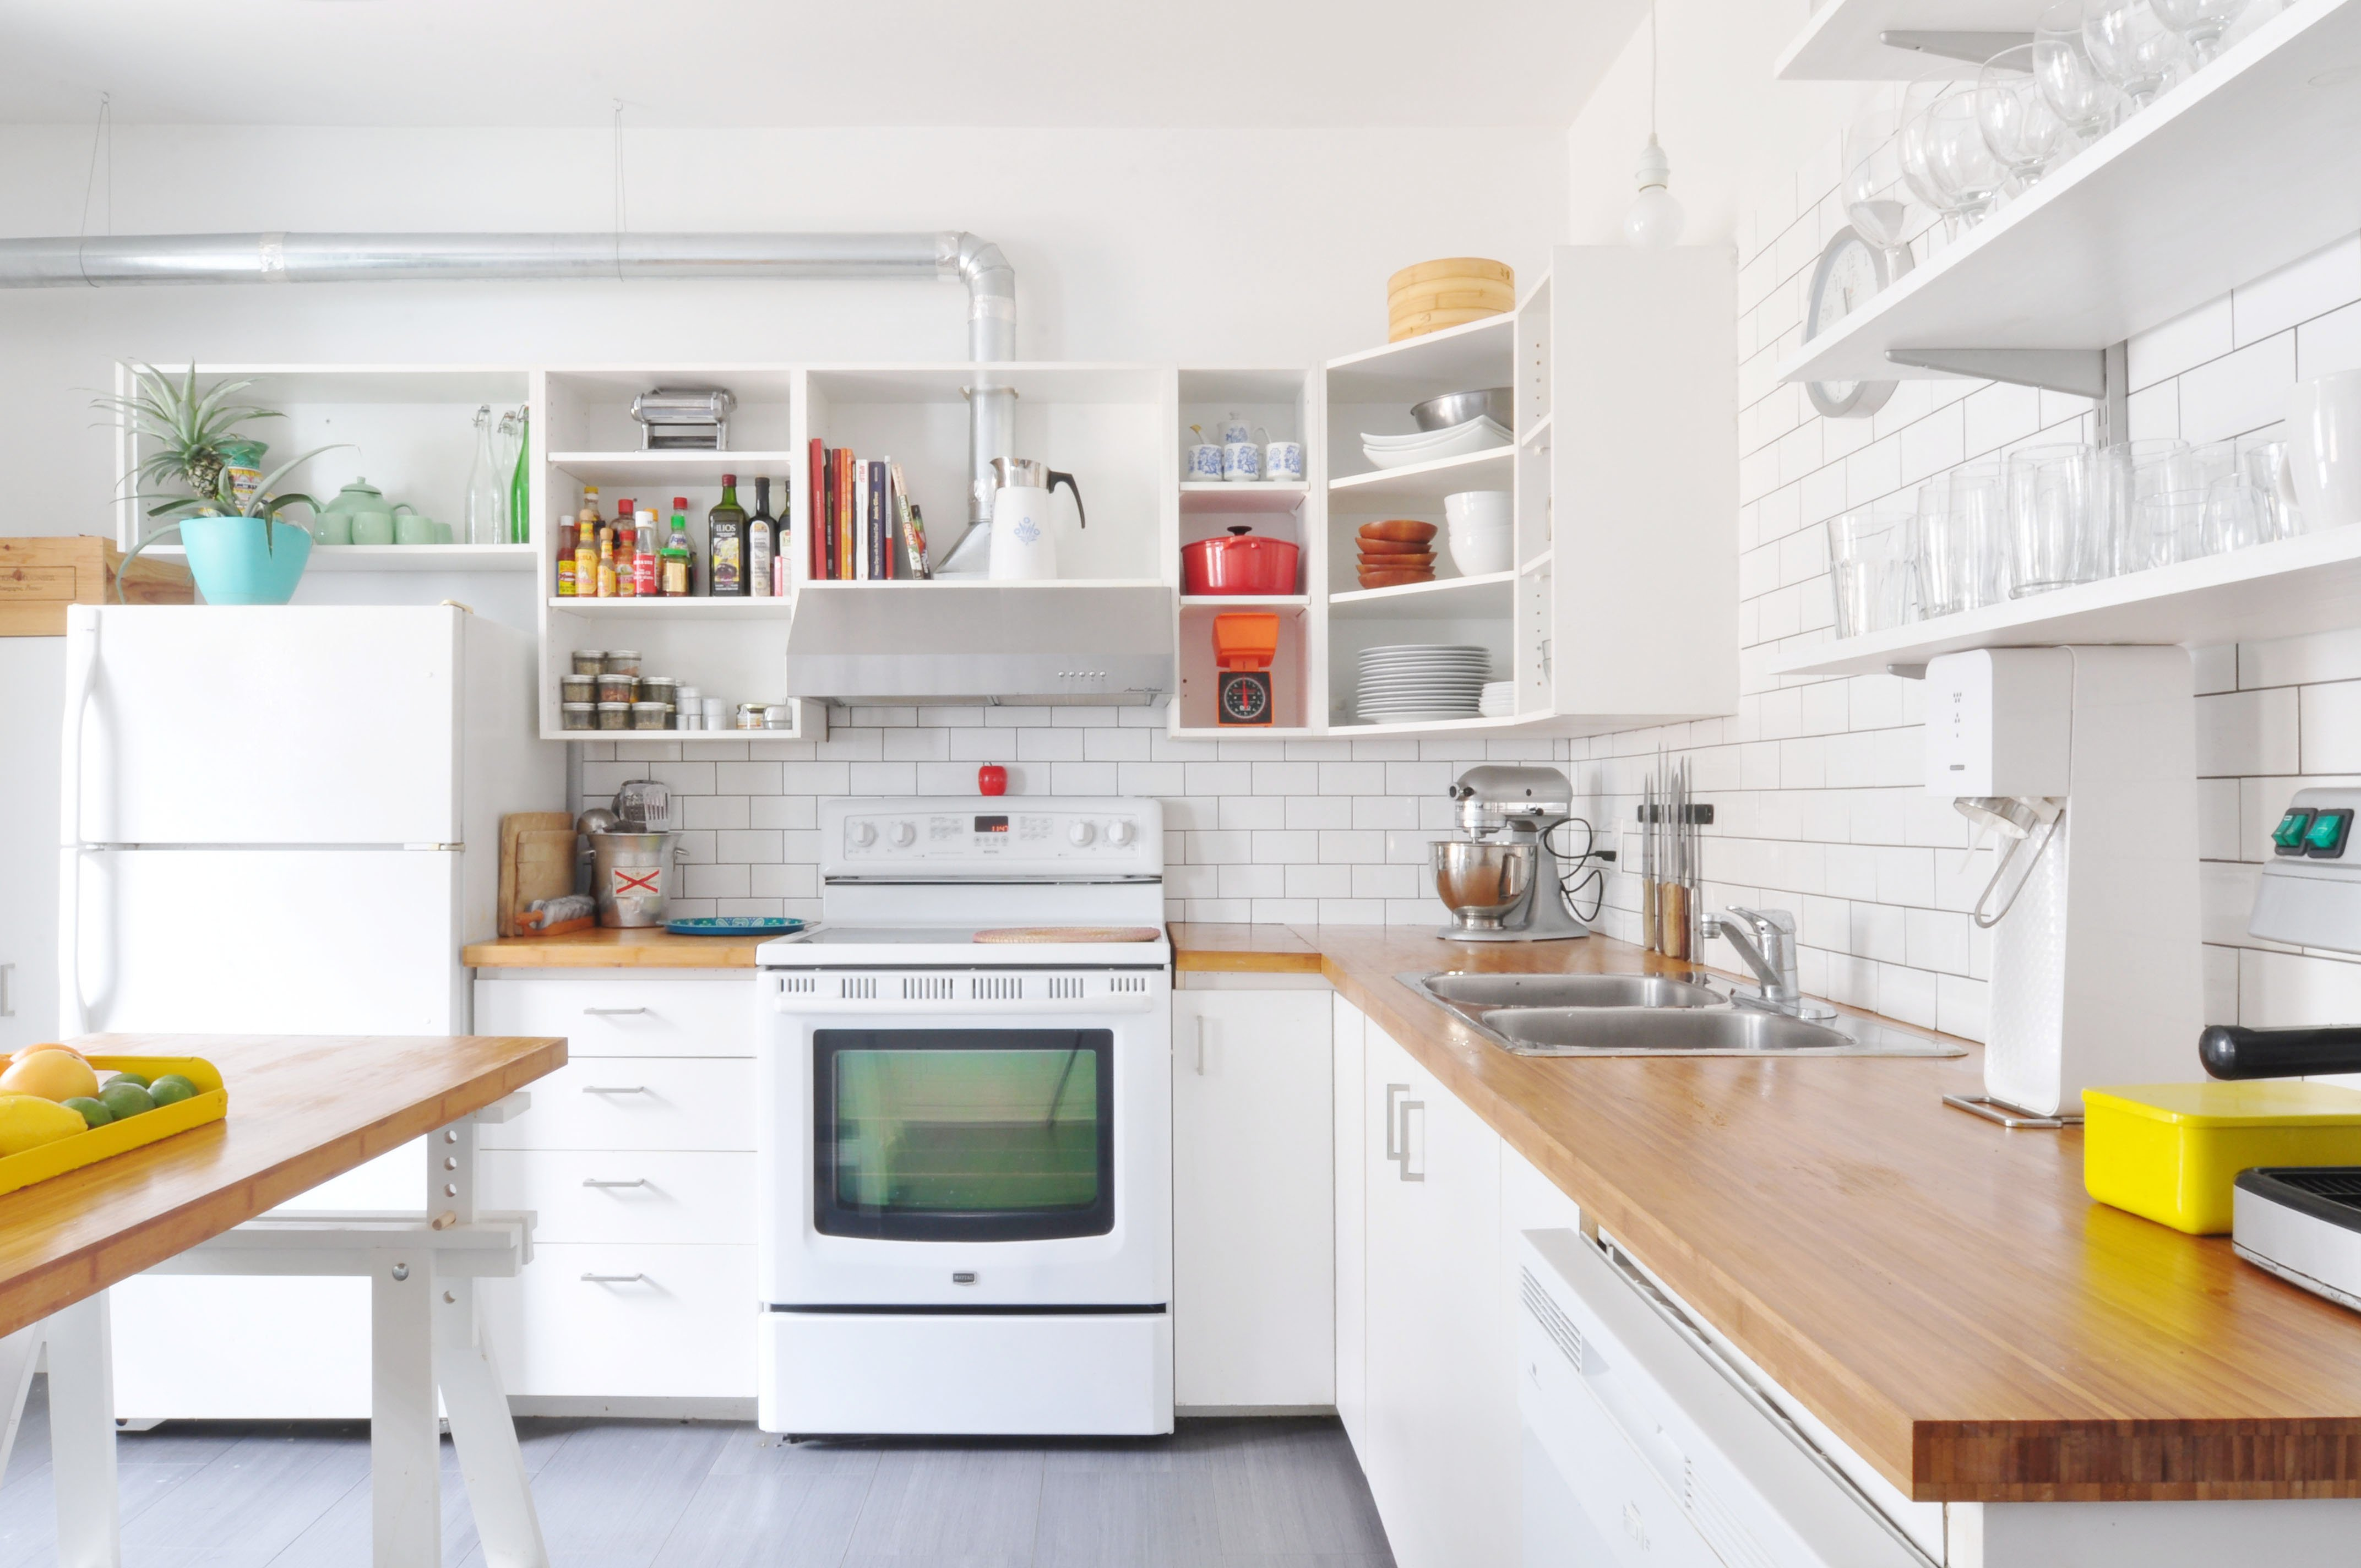 Cleaning Kitchen Cabinets How To Clean Wood Painted Cabinets